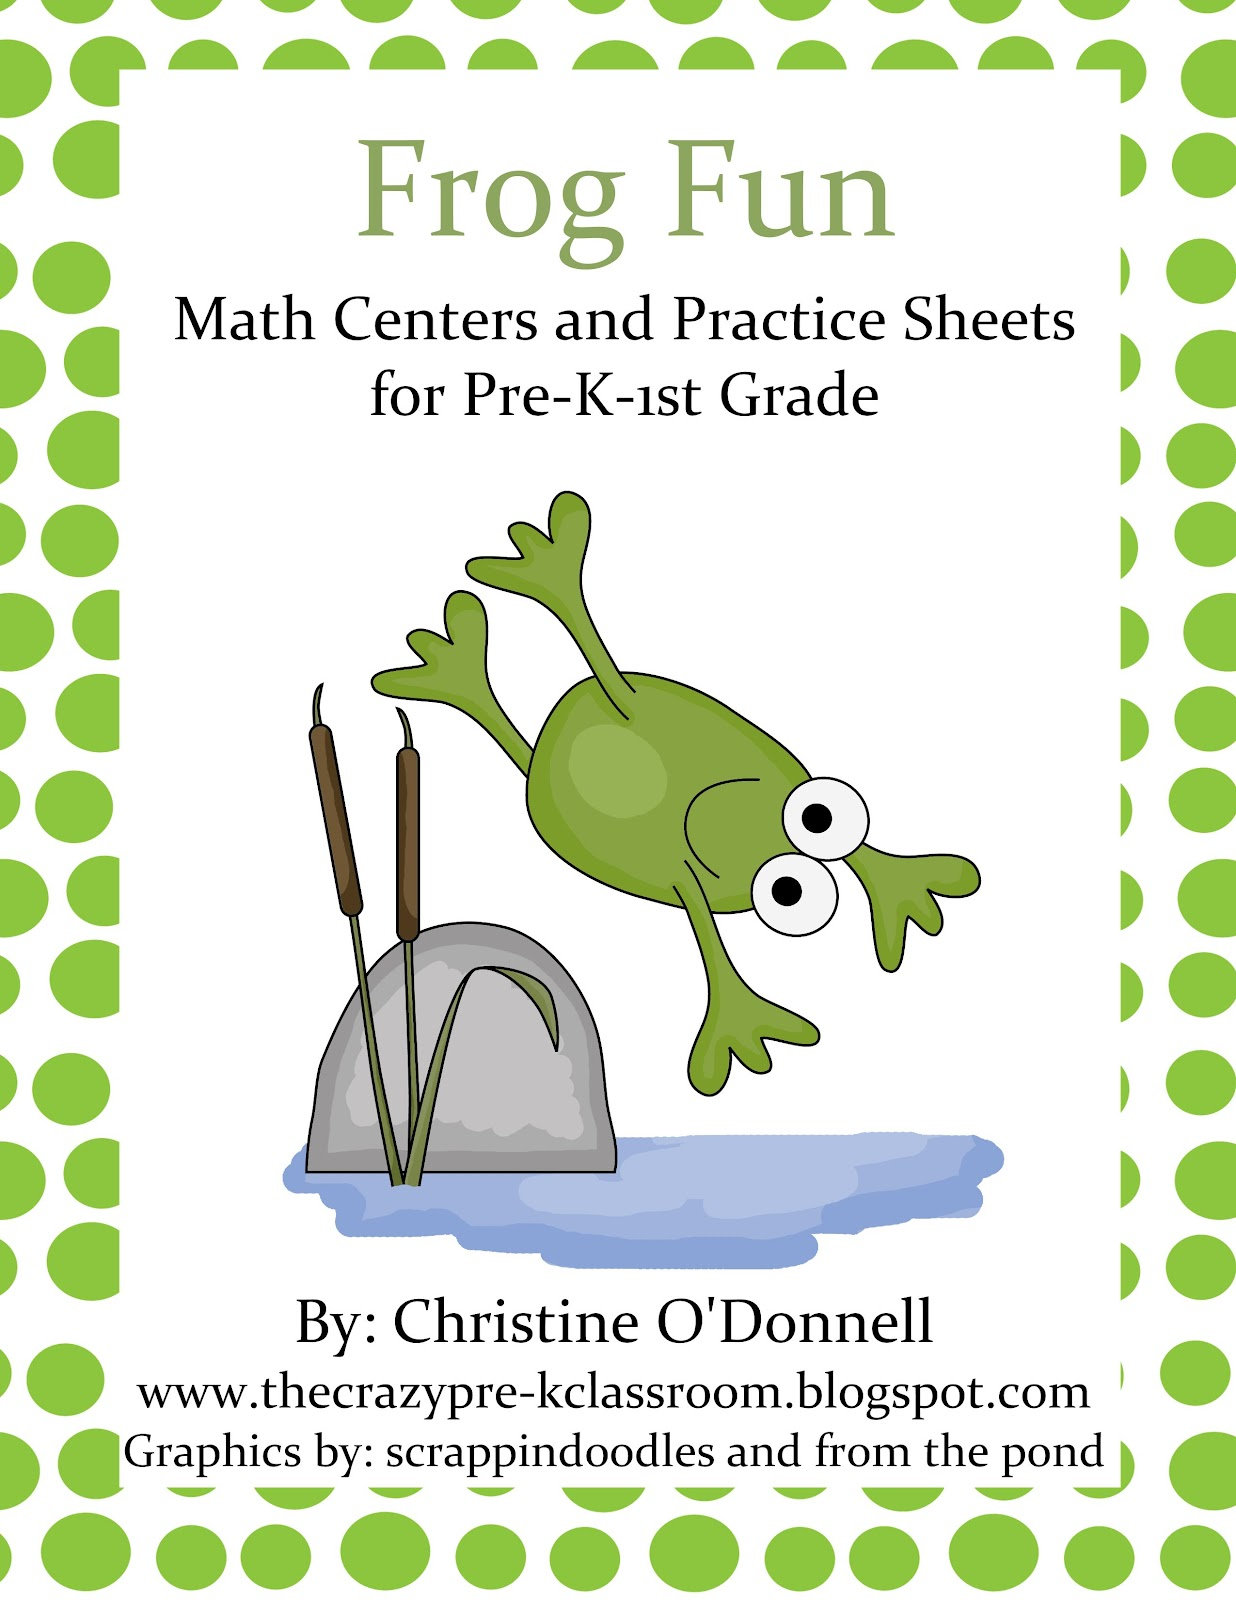 The Crazy Pre-K Classroom: Pond & Frog Math Centers! Fun with numbers!